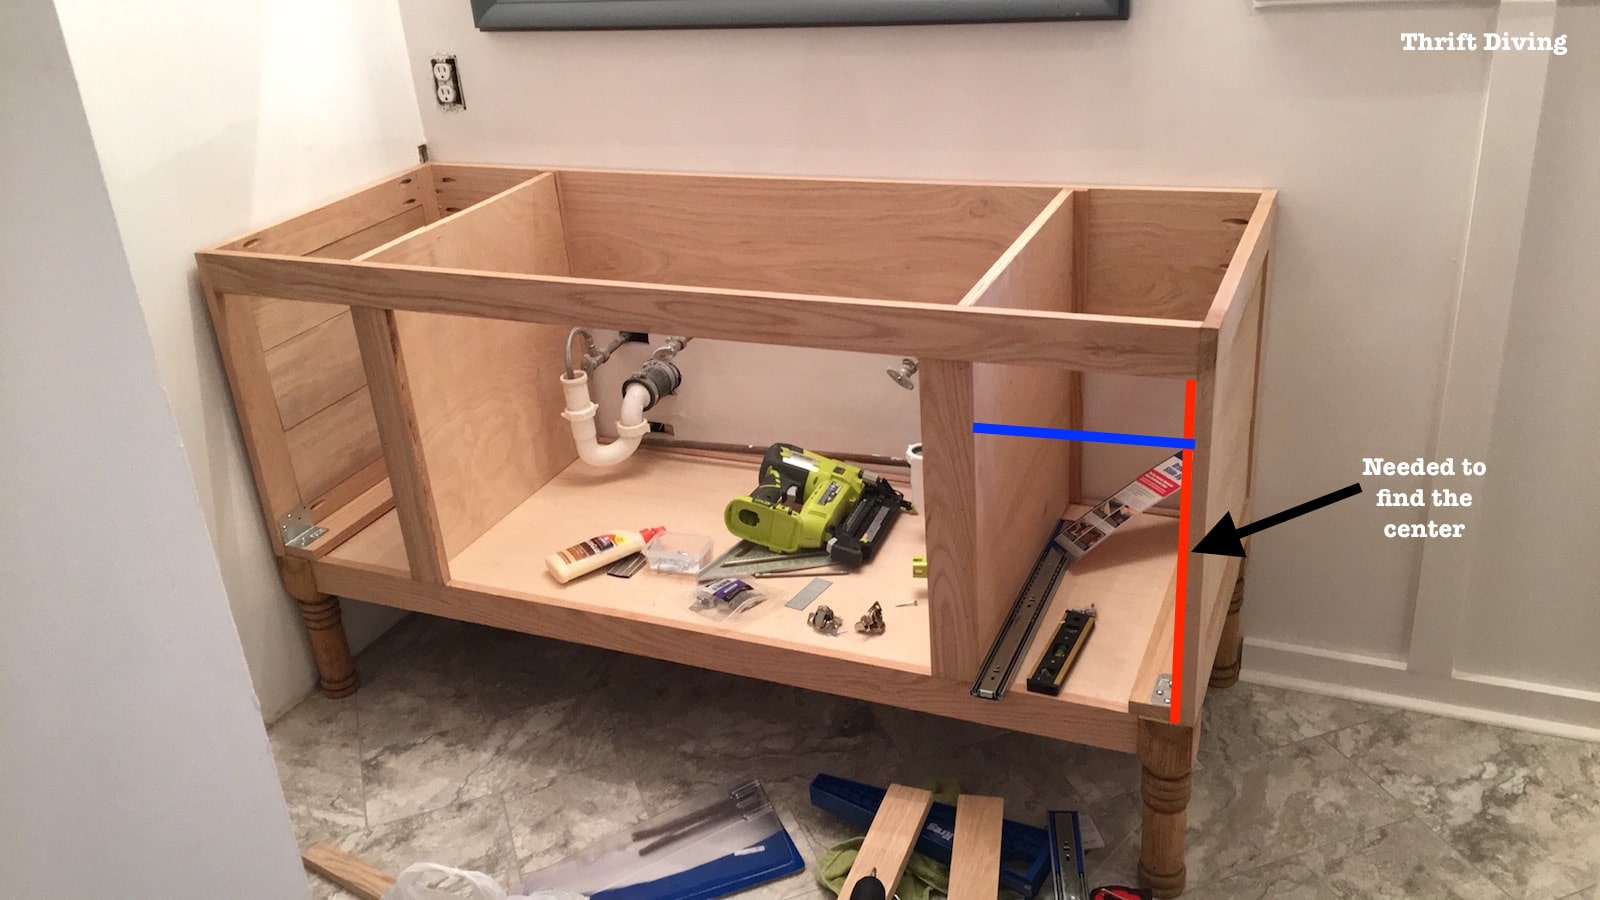 In Cabinet Drawers Build A Diy Bathroom Vanity Part 4 Making The Drawers